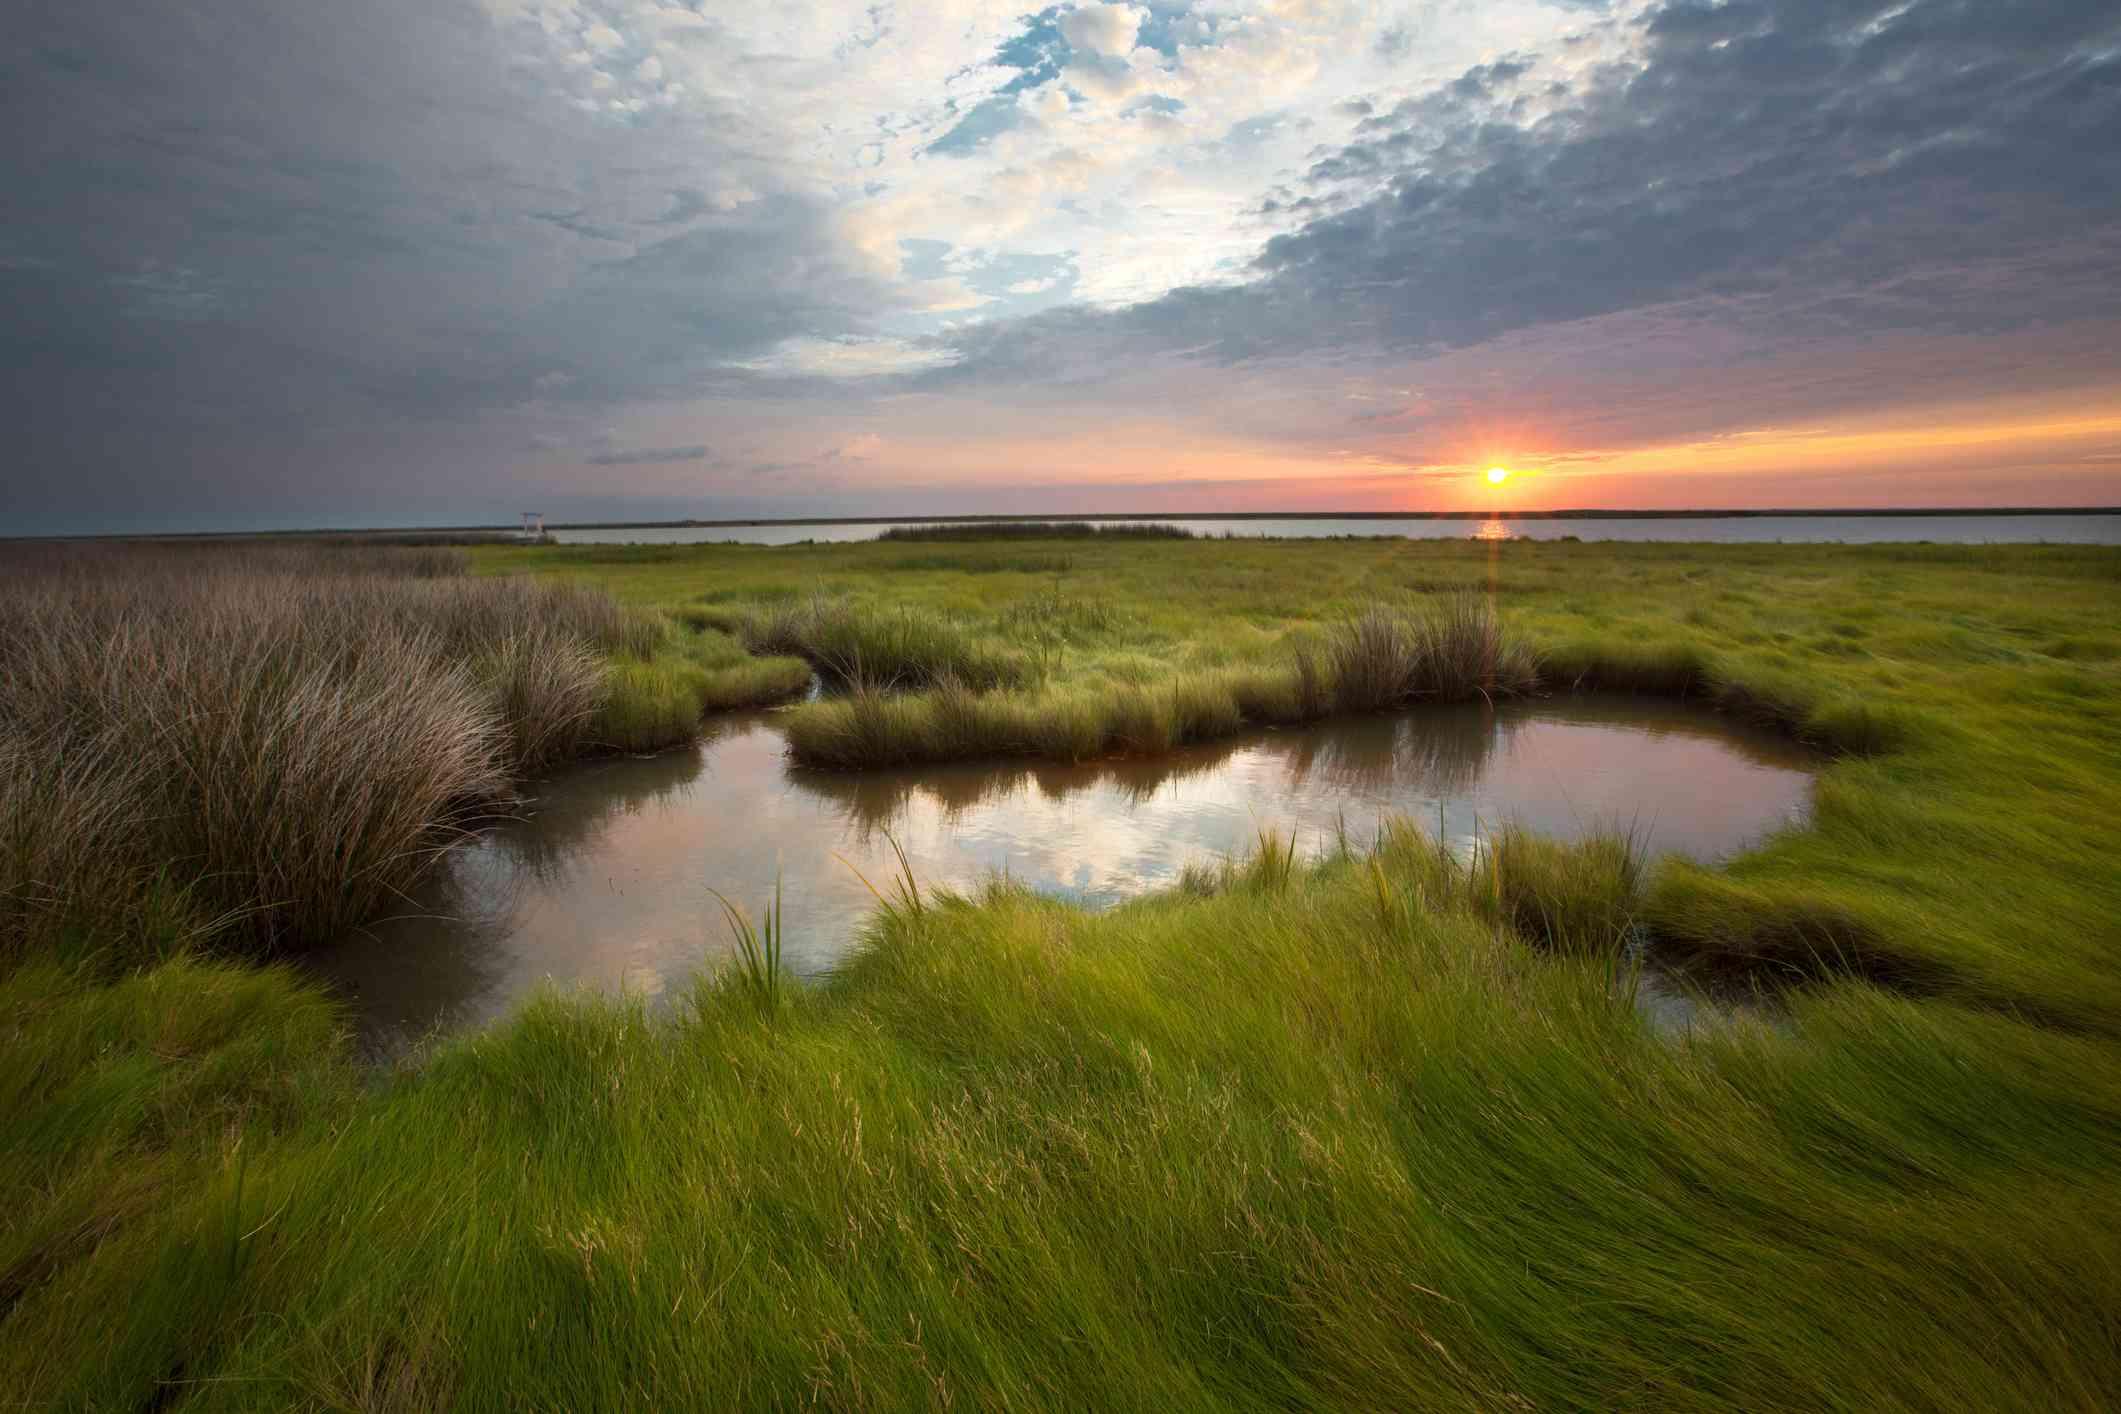 Smith Island on the eastern shore of Maryland